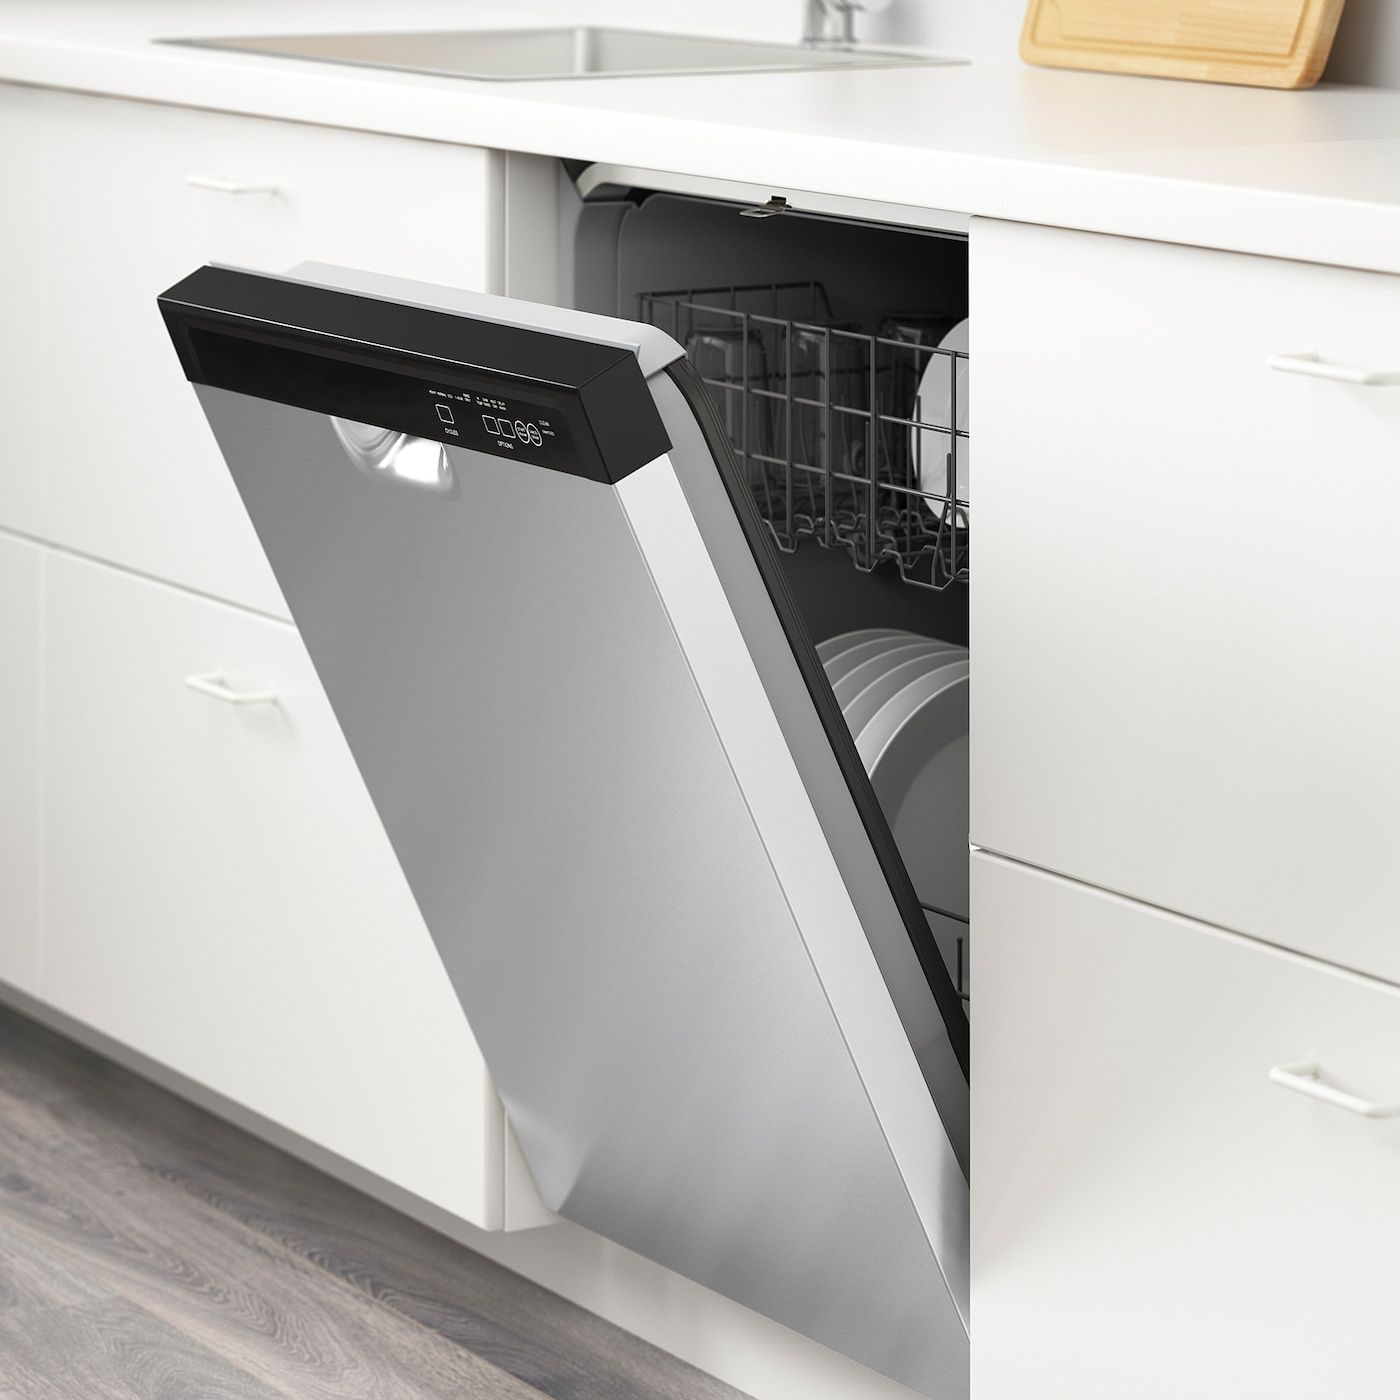 Ikea Renlig Lave Vaisselle Encastrable In 2020 Built In Dishwasher Countertop Dishwasher Dishwasher